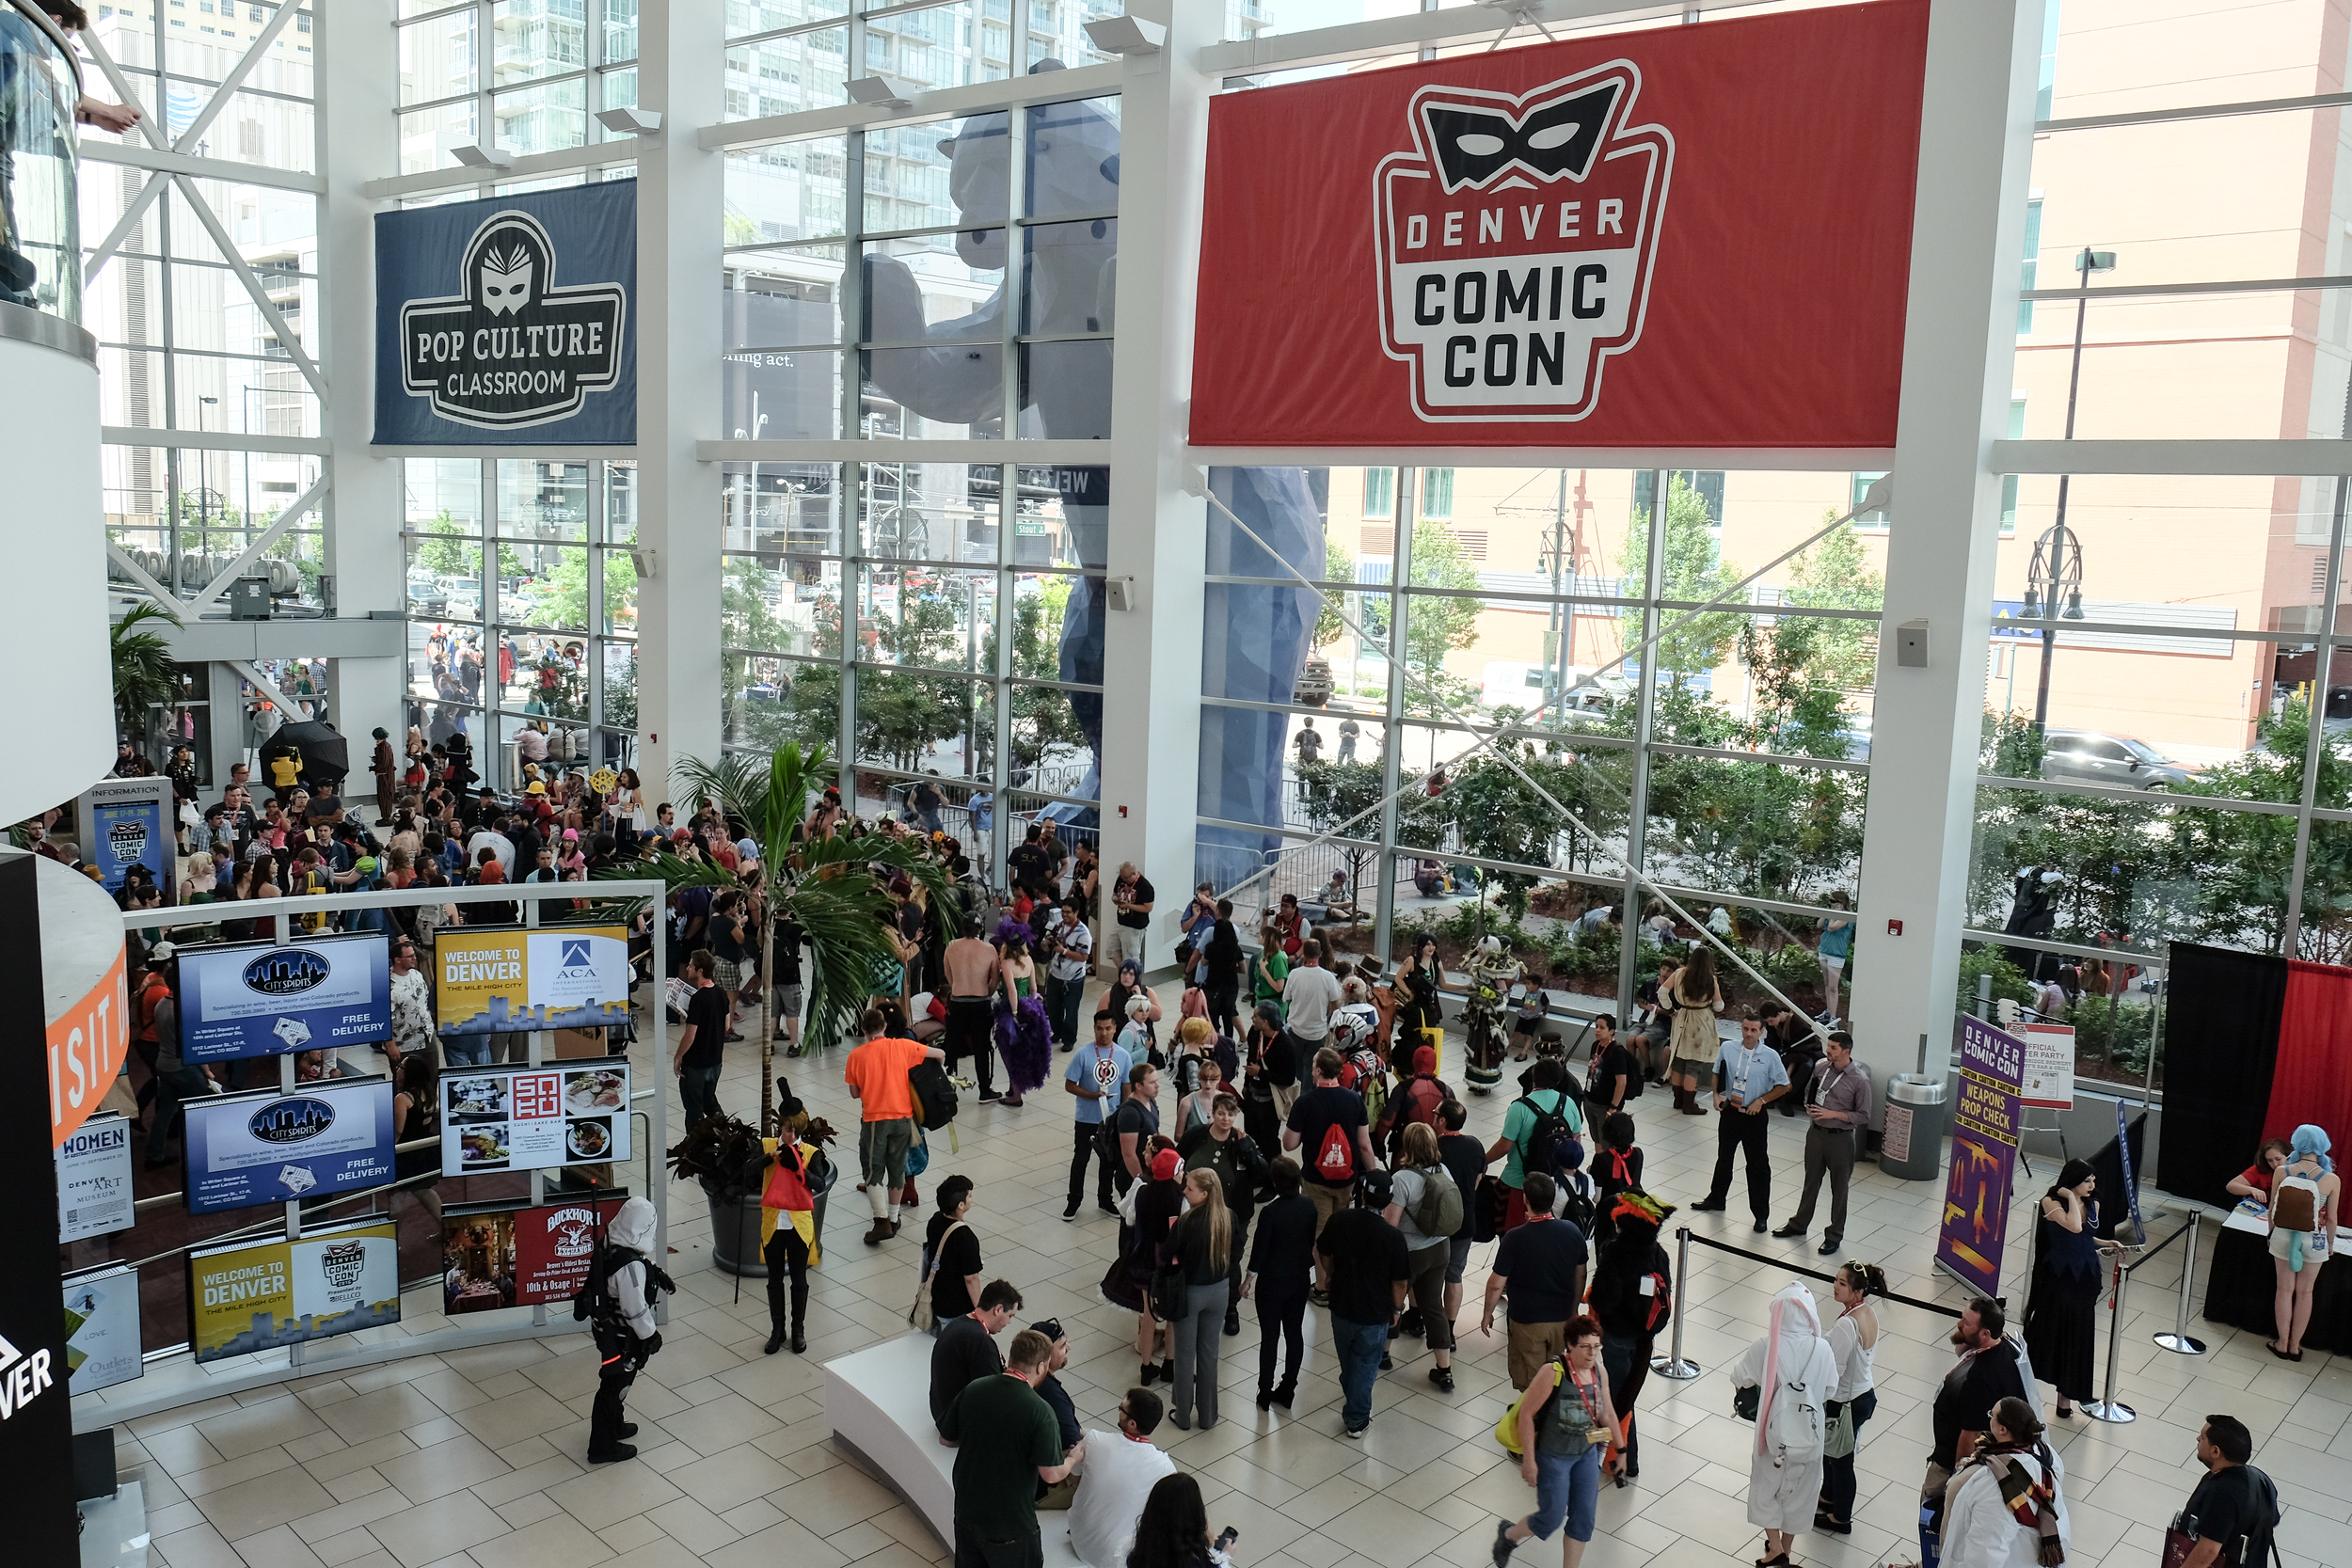 Record attendance of upward of 110,000+ at this years Denver Comic Con